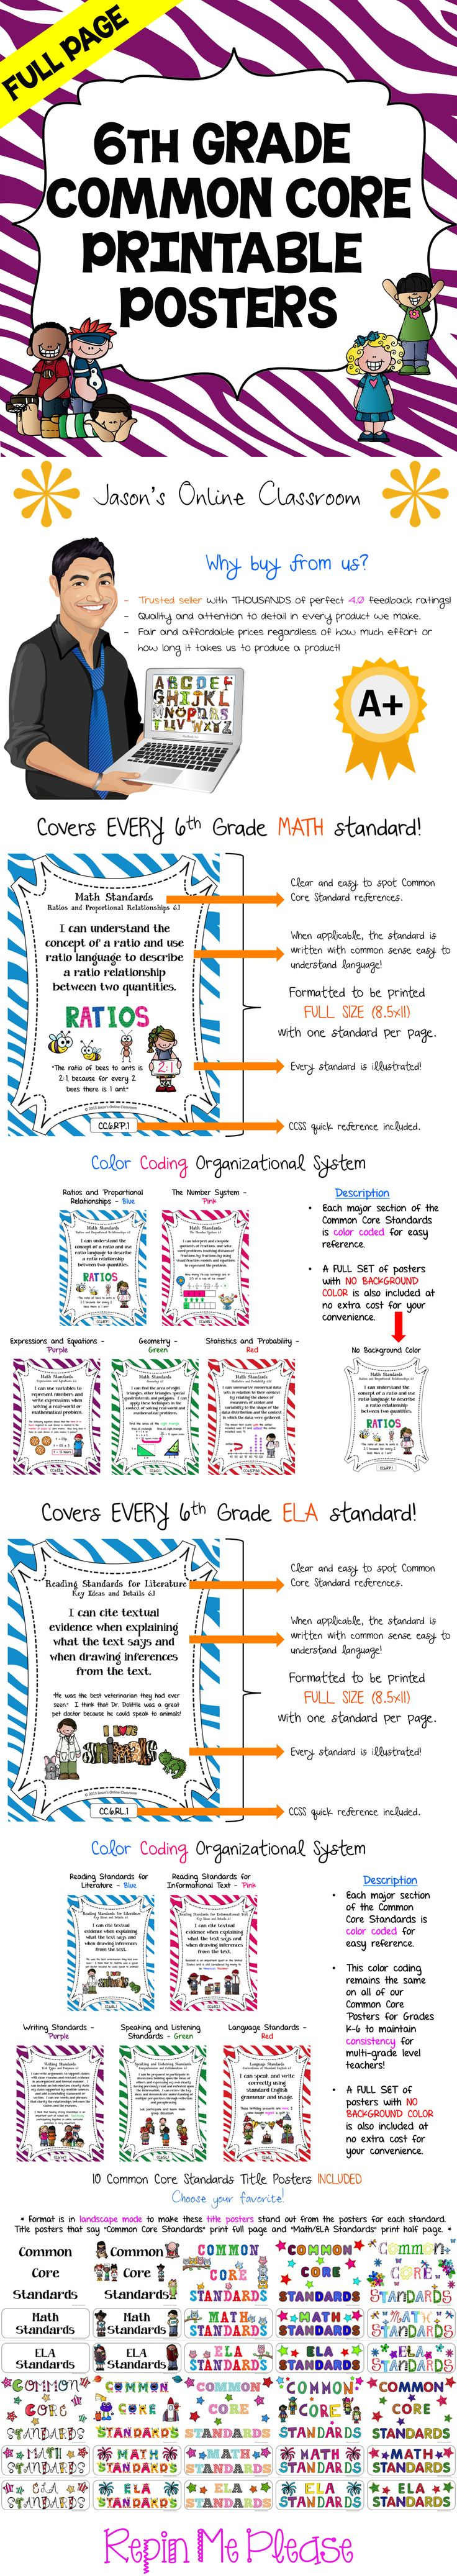 6th GRADE COMMON CORE POSTERS - Save a ton of time by buying our FULL PAGE SIZE pre-made Common Core color coded posters with detailed visual examples. We also offer half-sized posters which can be found at our TpT store. $$